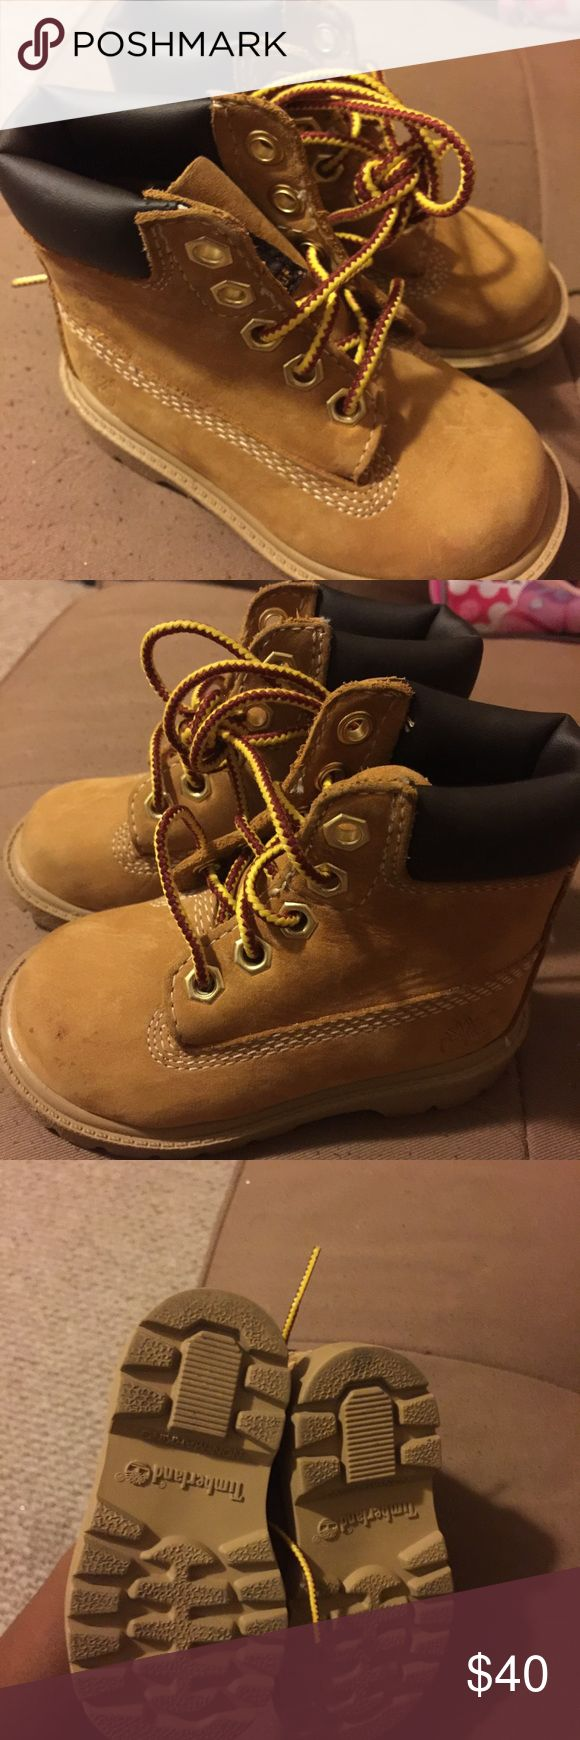 Toddler timberland construct boots Worn a few times as u can see in the front but you can clean them with special timberland boot spray . Cute for fall winter and spring season . Timberland Shoes Boots